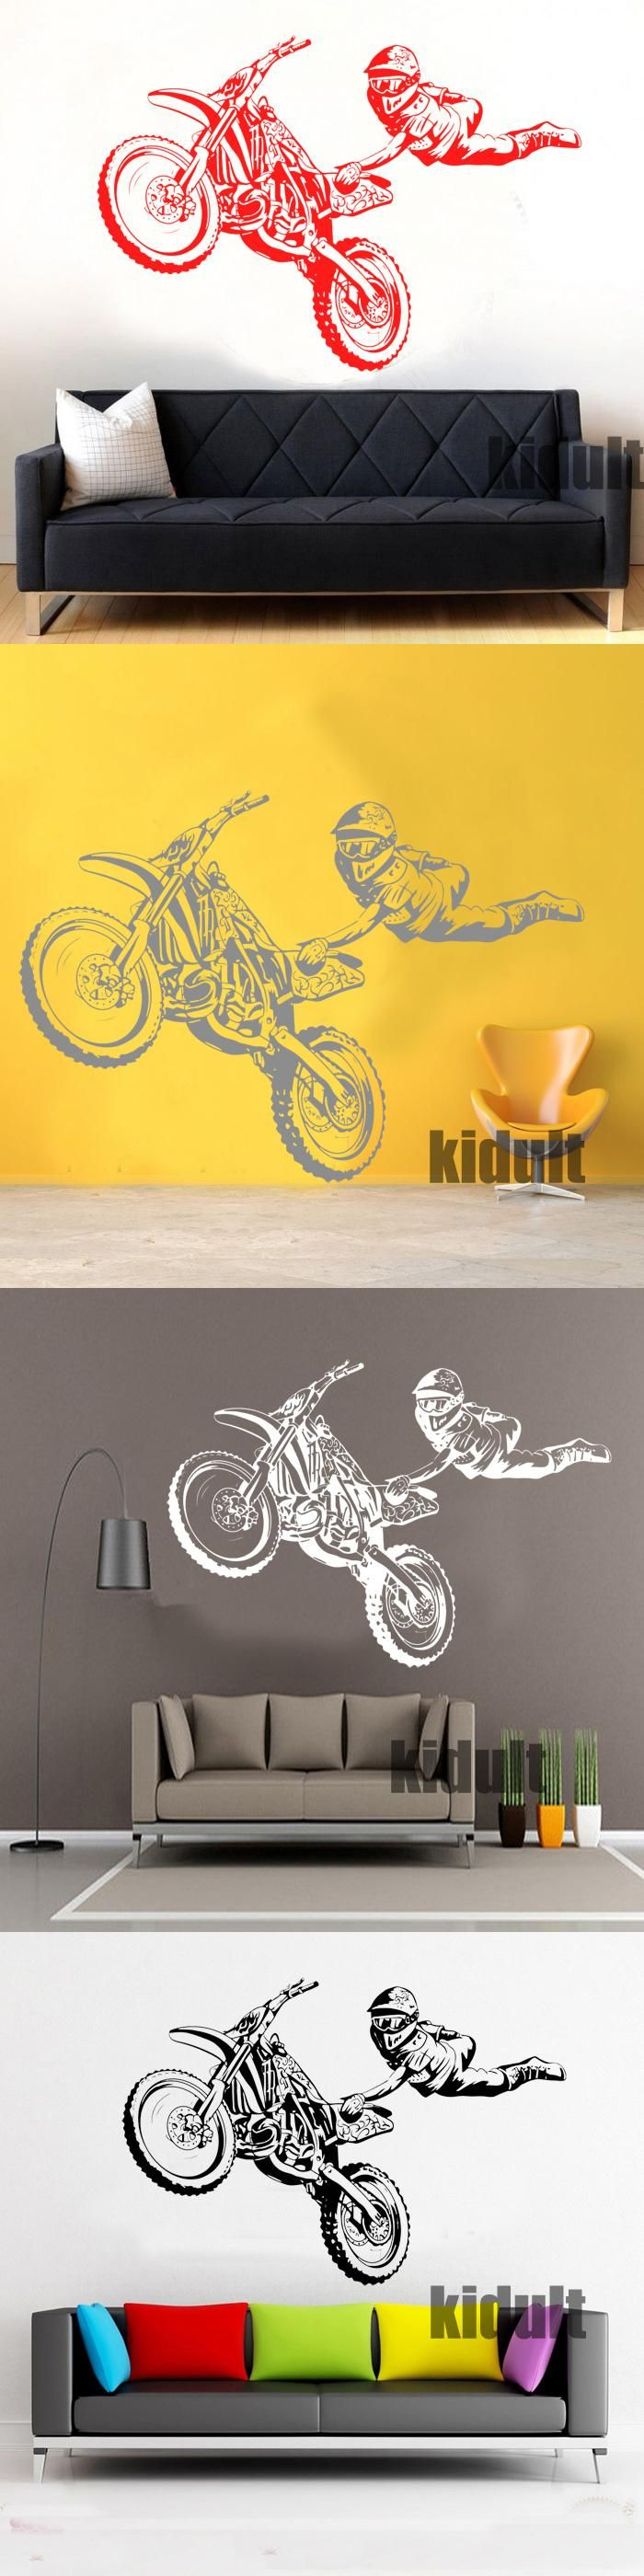 Motorcycle Wall Stickers Creative Performance Speed Bedroom Home ...